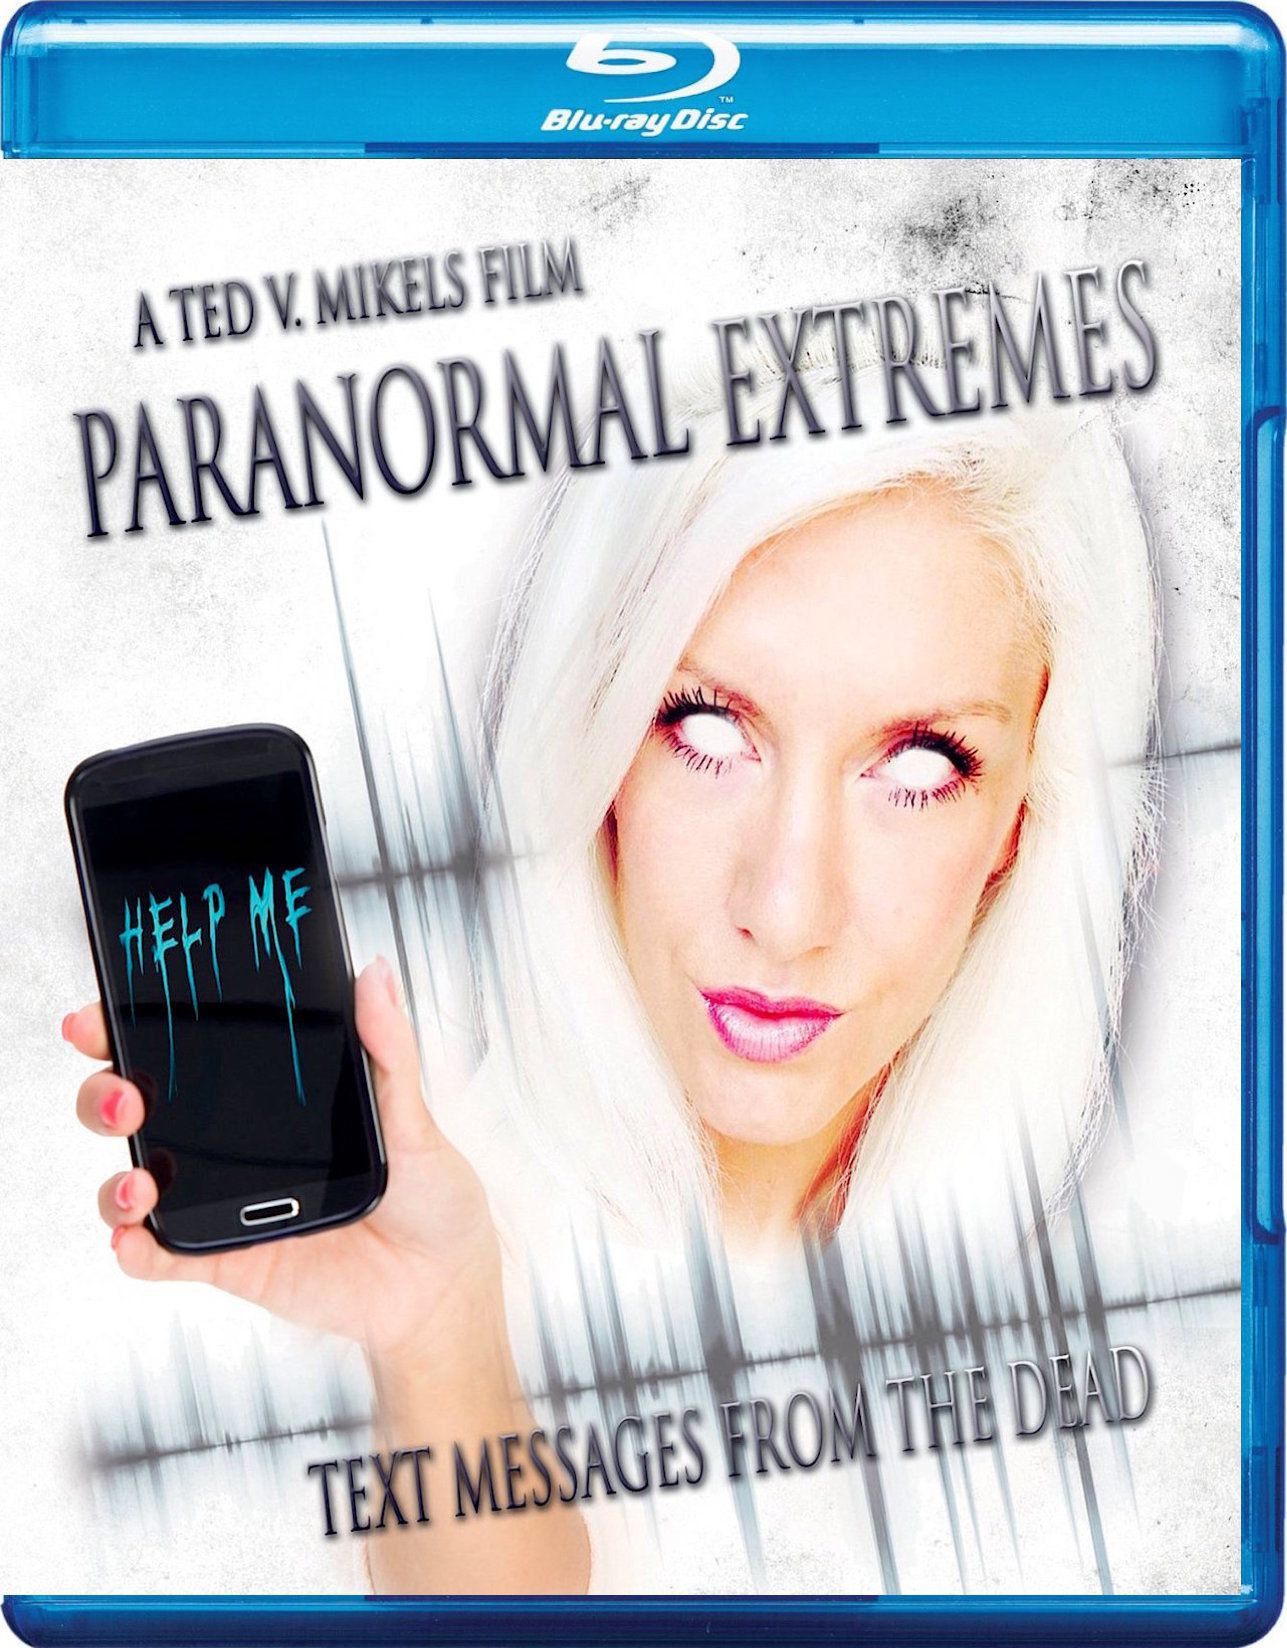 Paranormal Extremes: Text Messages from the Dead - Film (2015)